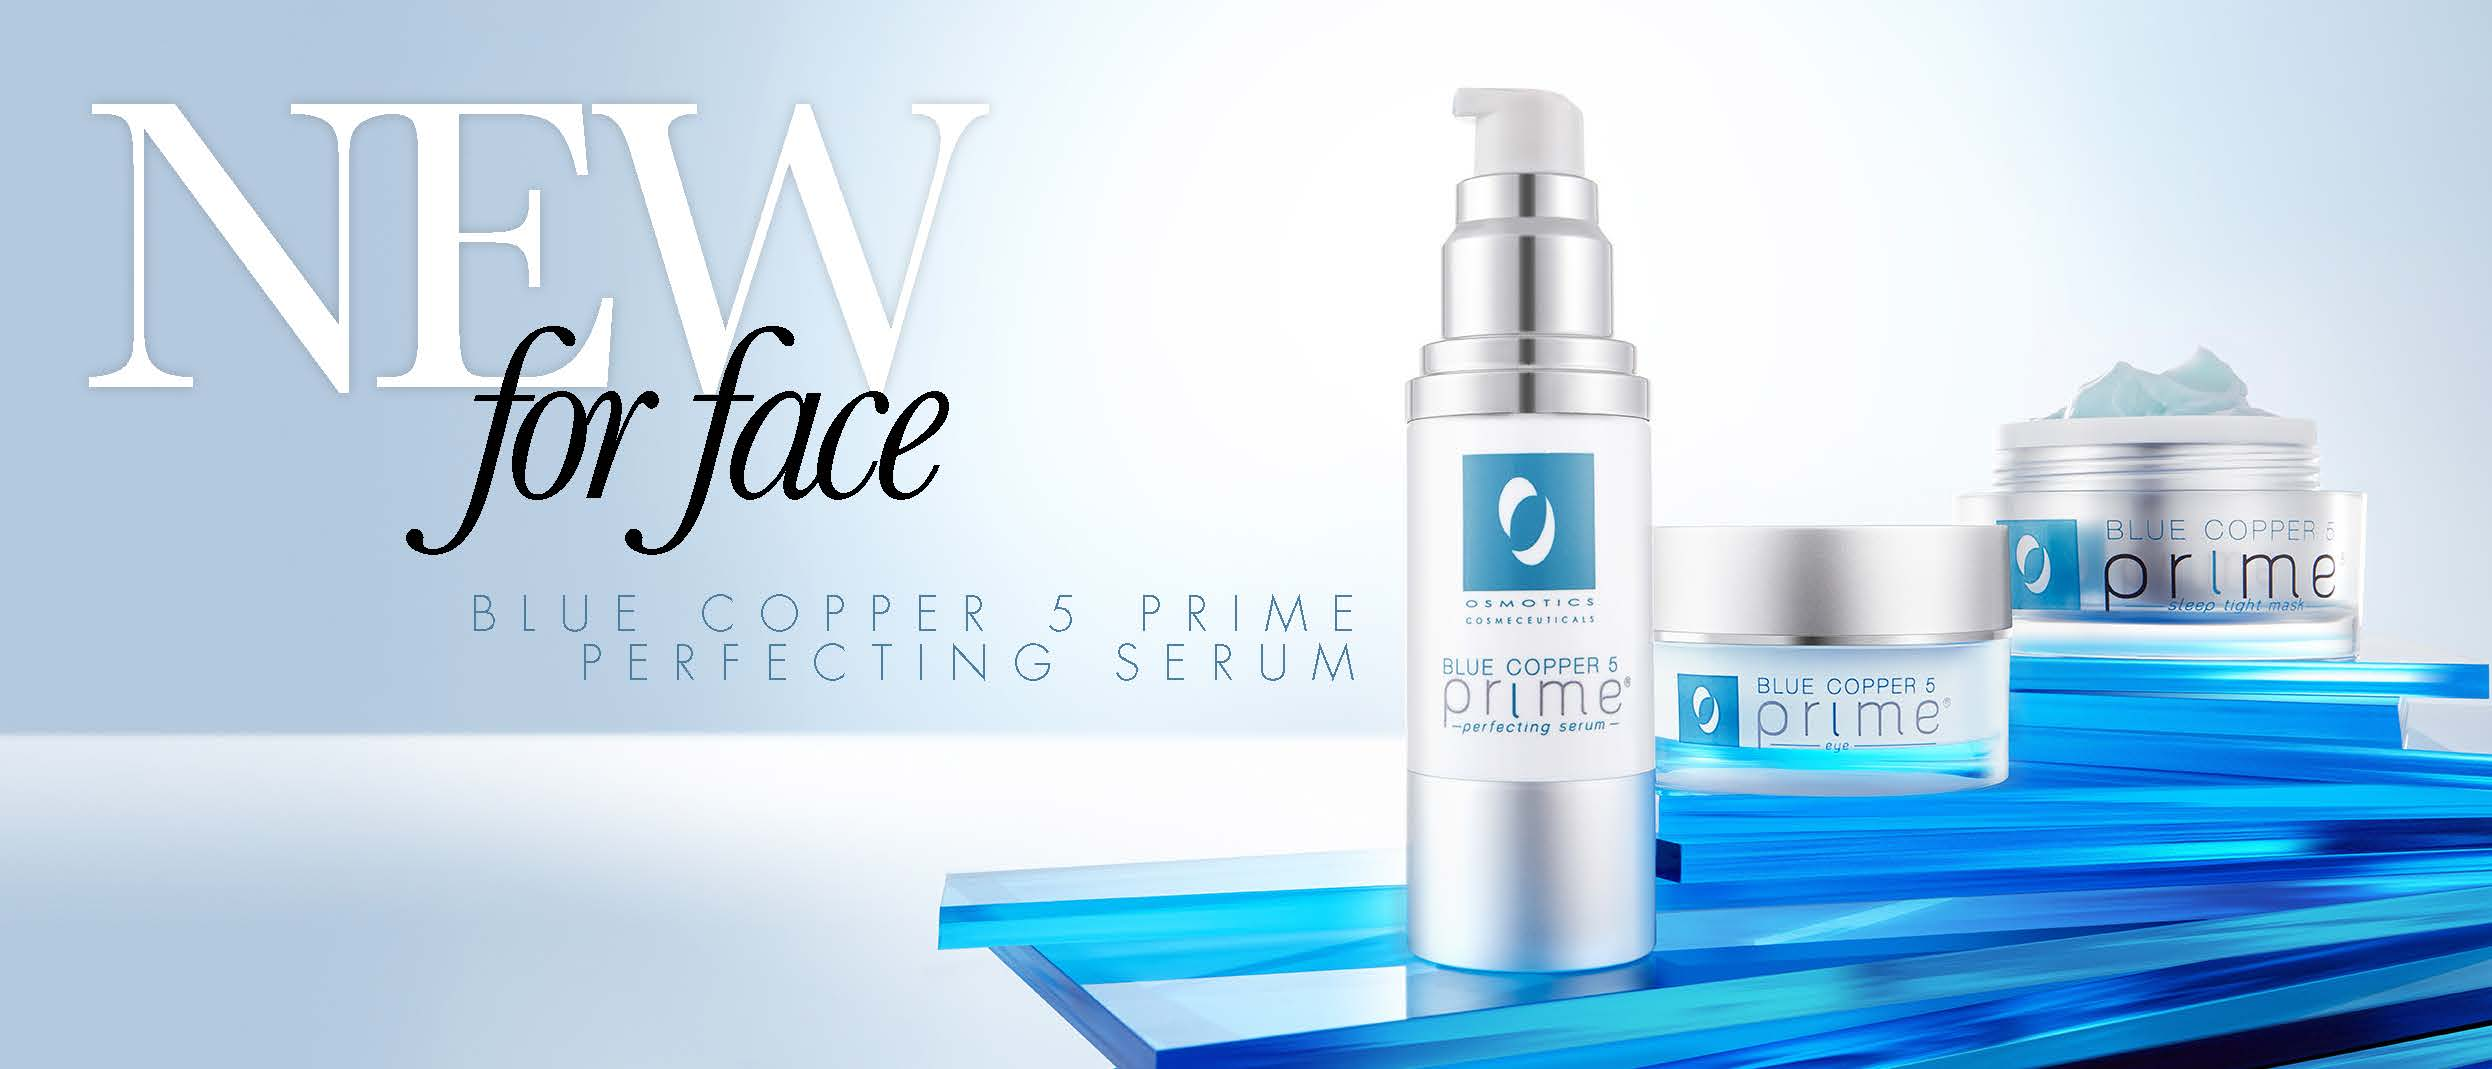 Blue Copper 5 Prime Perfecting Serum is recommended to target visible signs of aging for women 40+ or for anyone wanting a multi-tasking, anti-aging long term anti-aging benefits, and flawless, younger looking skin.